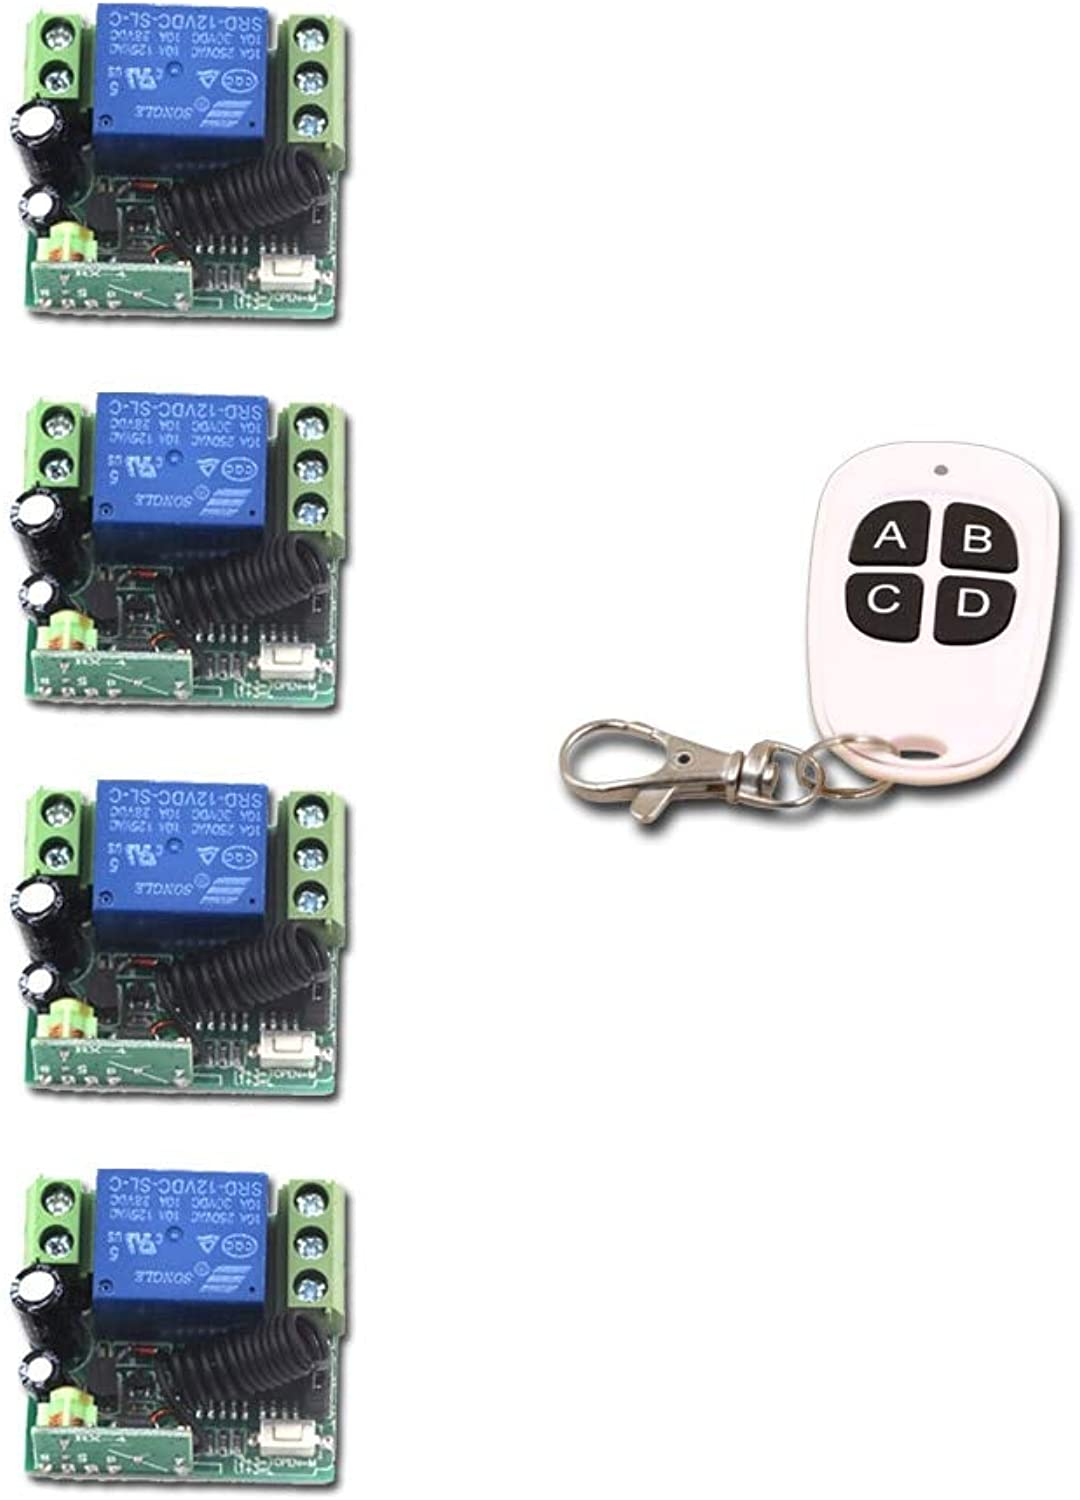 Wireless Remote Control Switch DC 12V 1CH 1 CH 10A Mini Relay Receiver Light LED Switch Transmitter Receiver 315Mhz 433Mhz  (color  433Mhz)